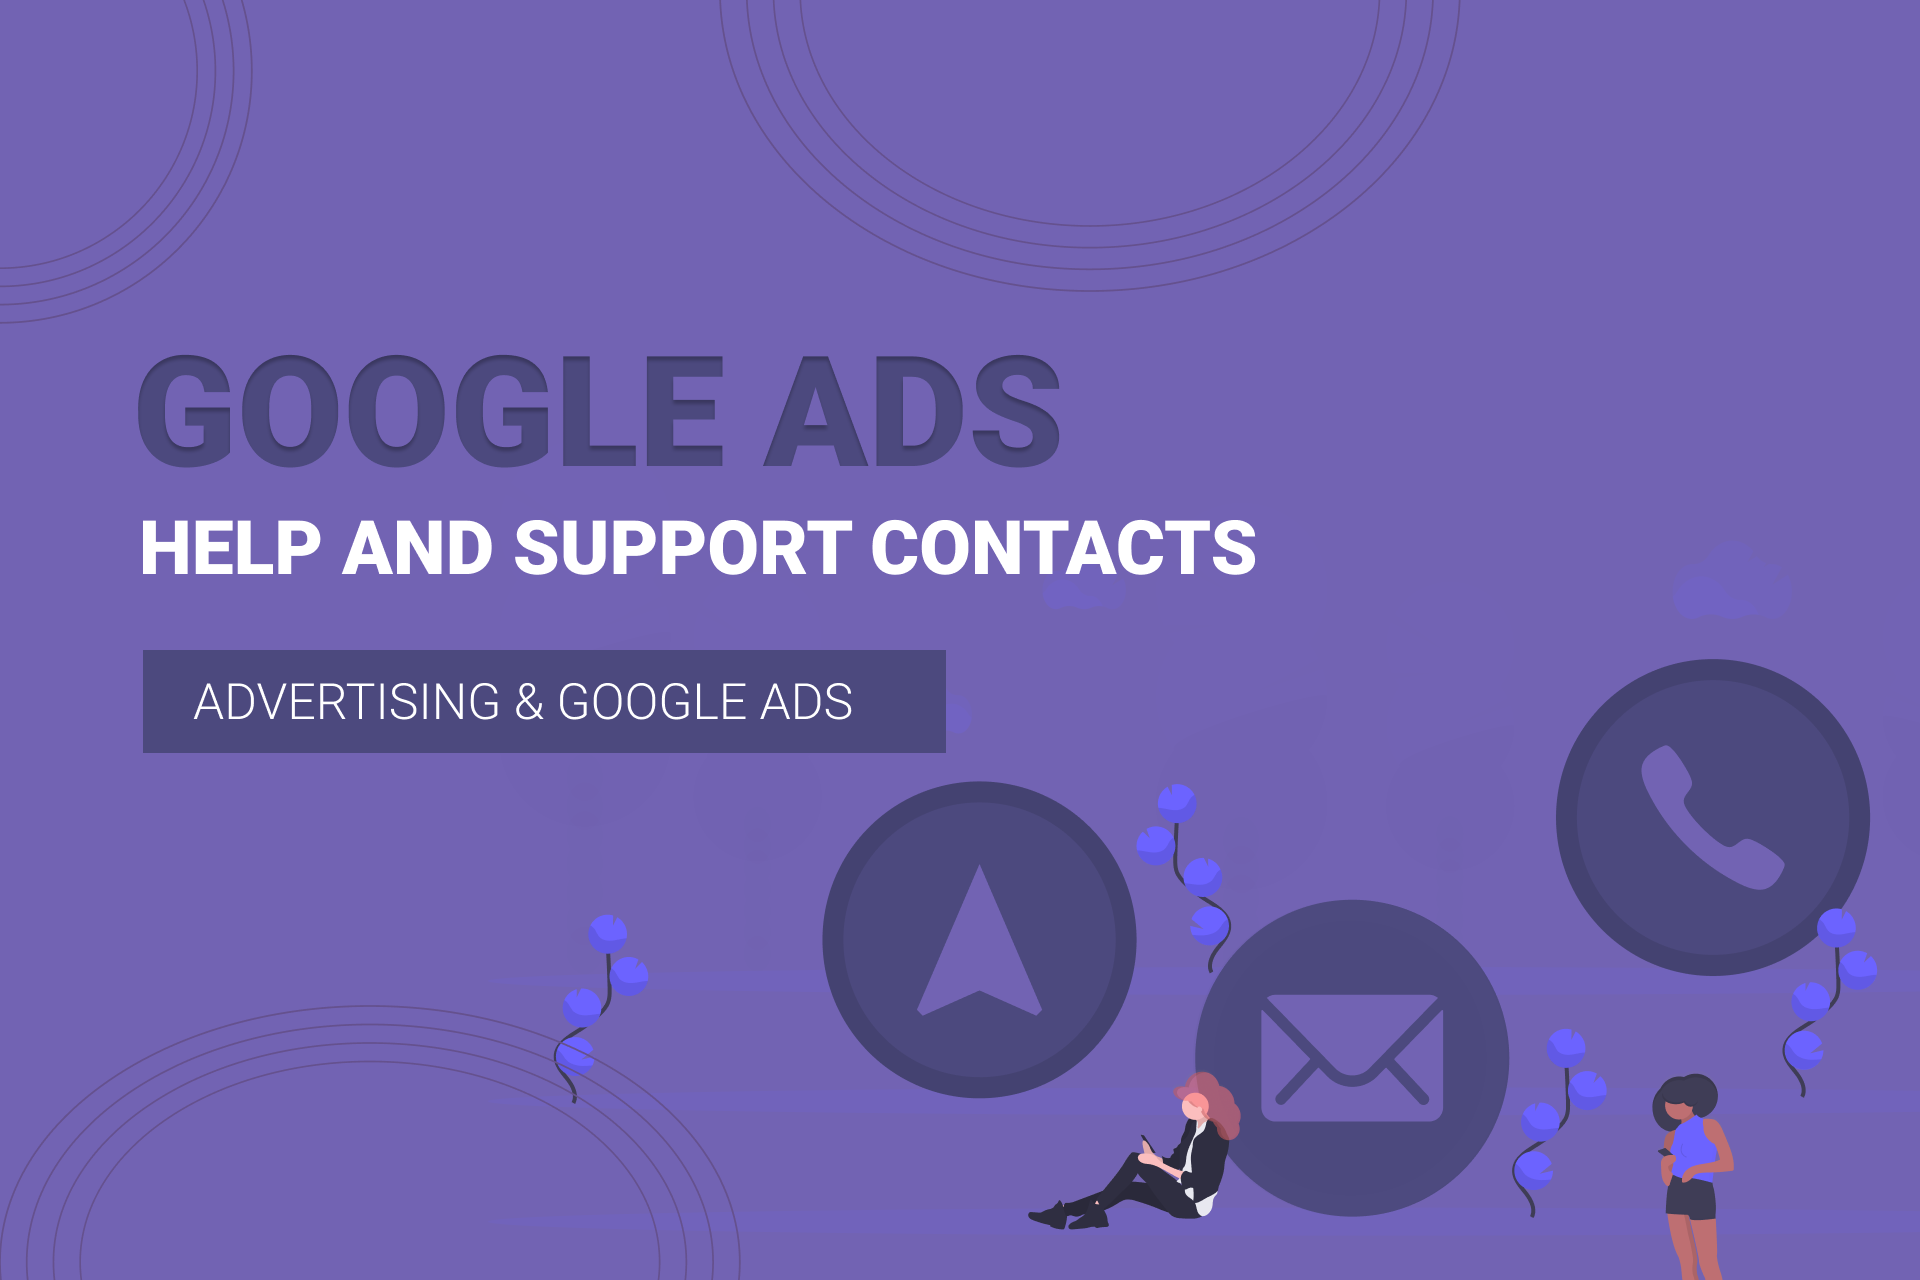 Google Ads Help And Support Contacts